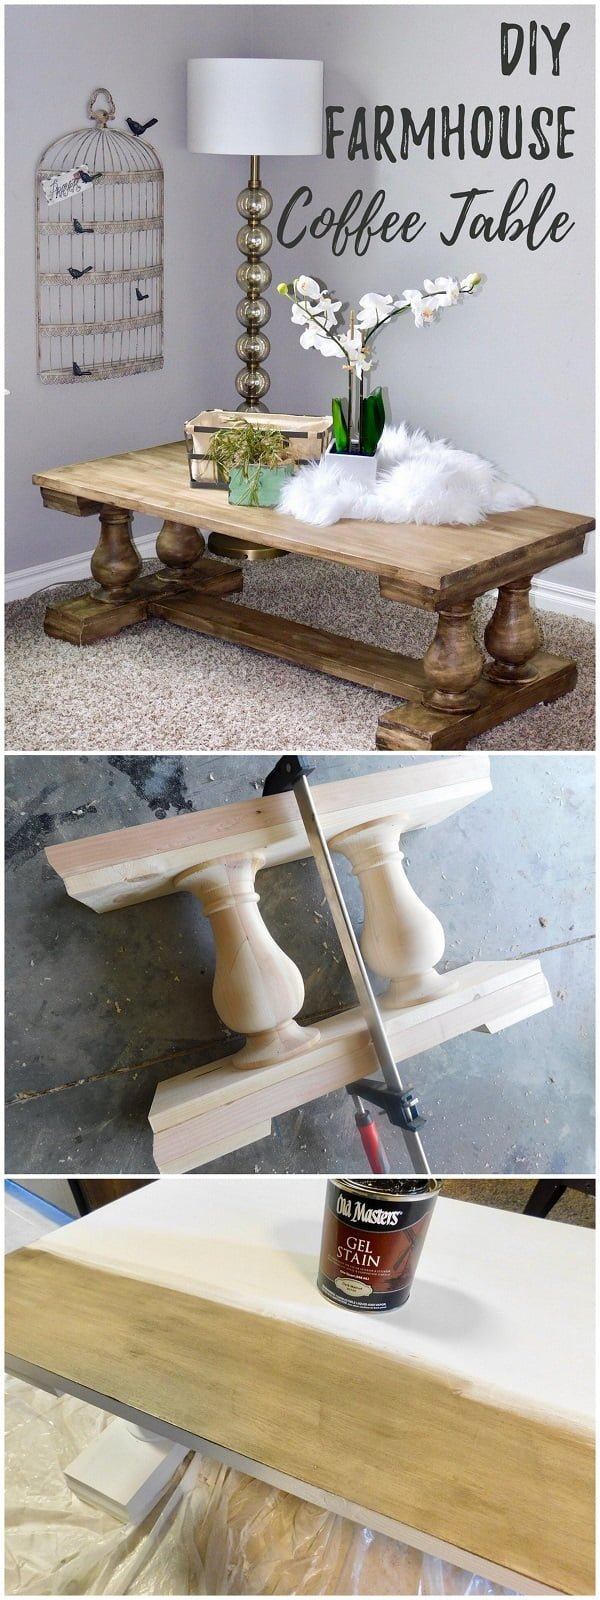 Easy idea on how to make a #DIY #farmhouse coffee table #homedecor #wood #project